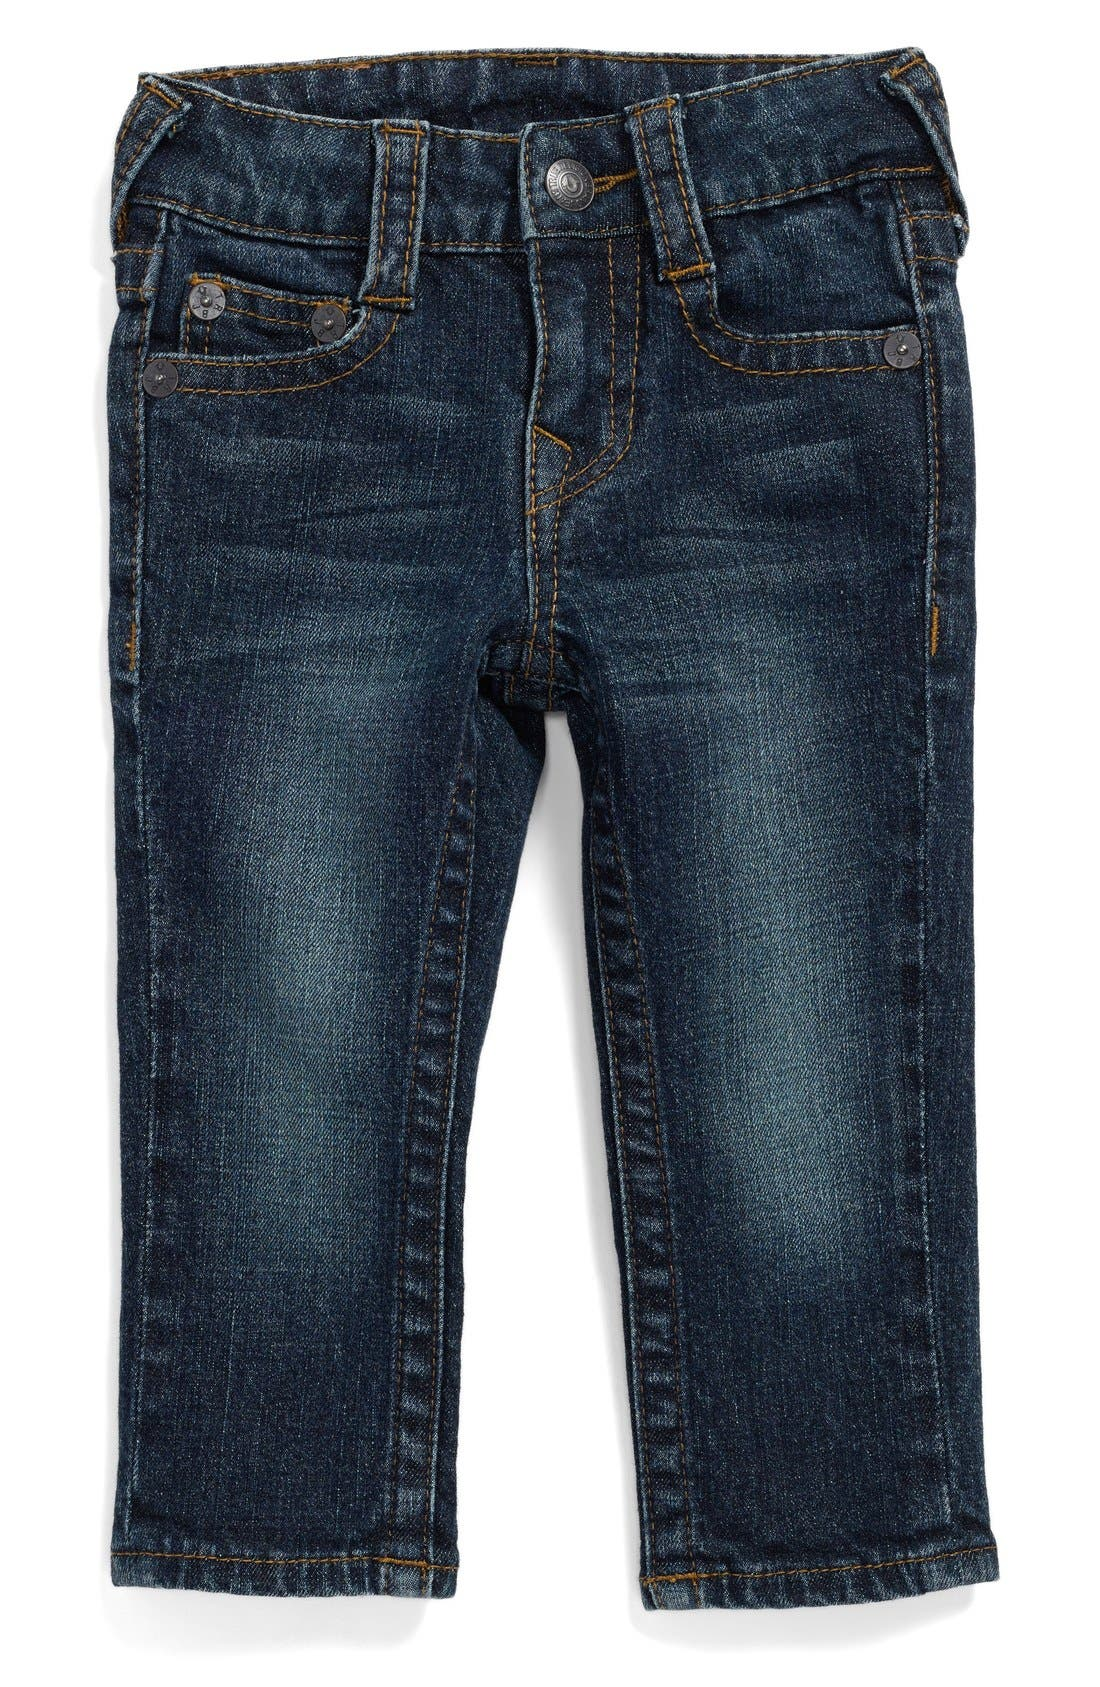 'Geno' Relaxed Slim Fit Classic Jeans,                         Main,                         color, INDIGO BLAST